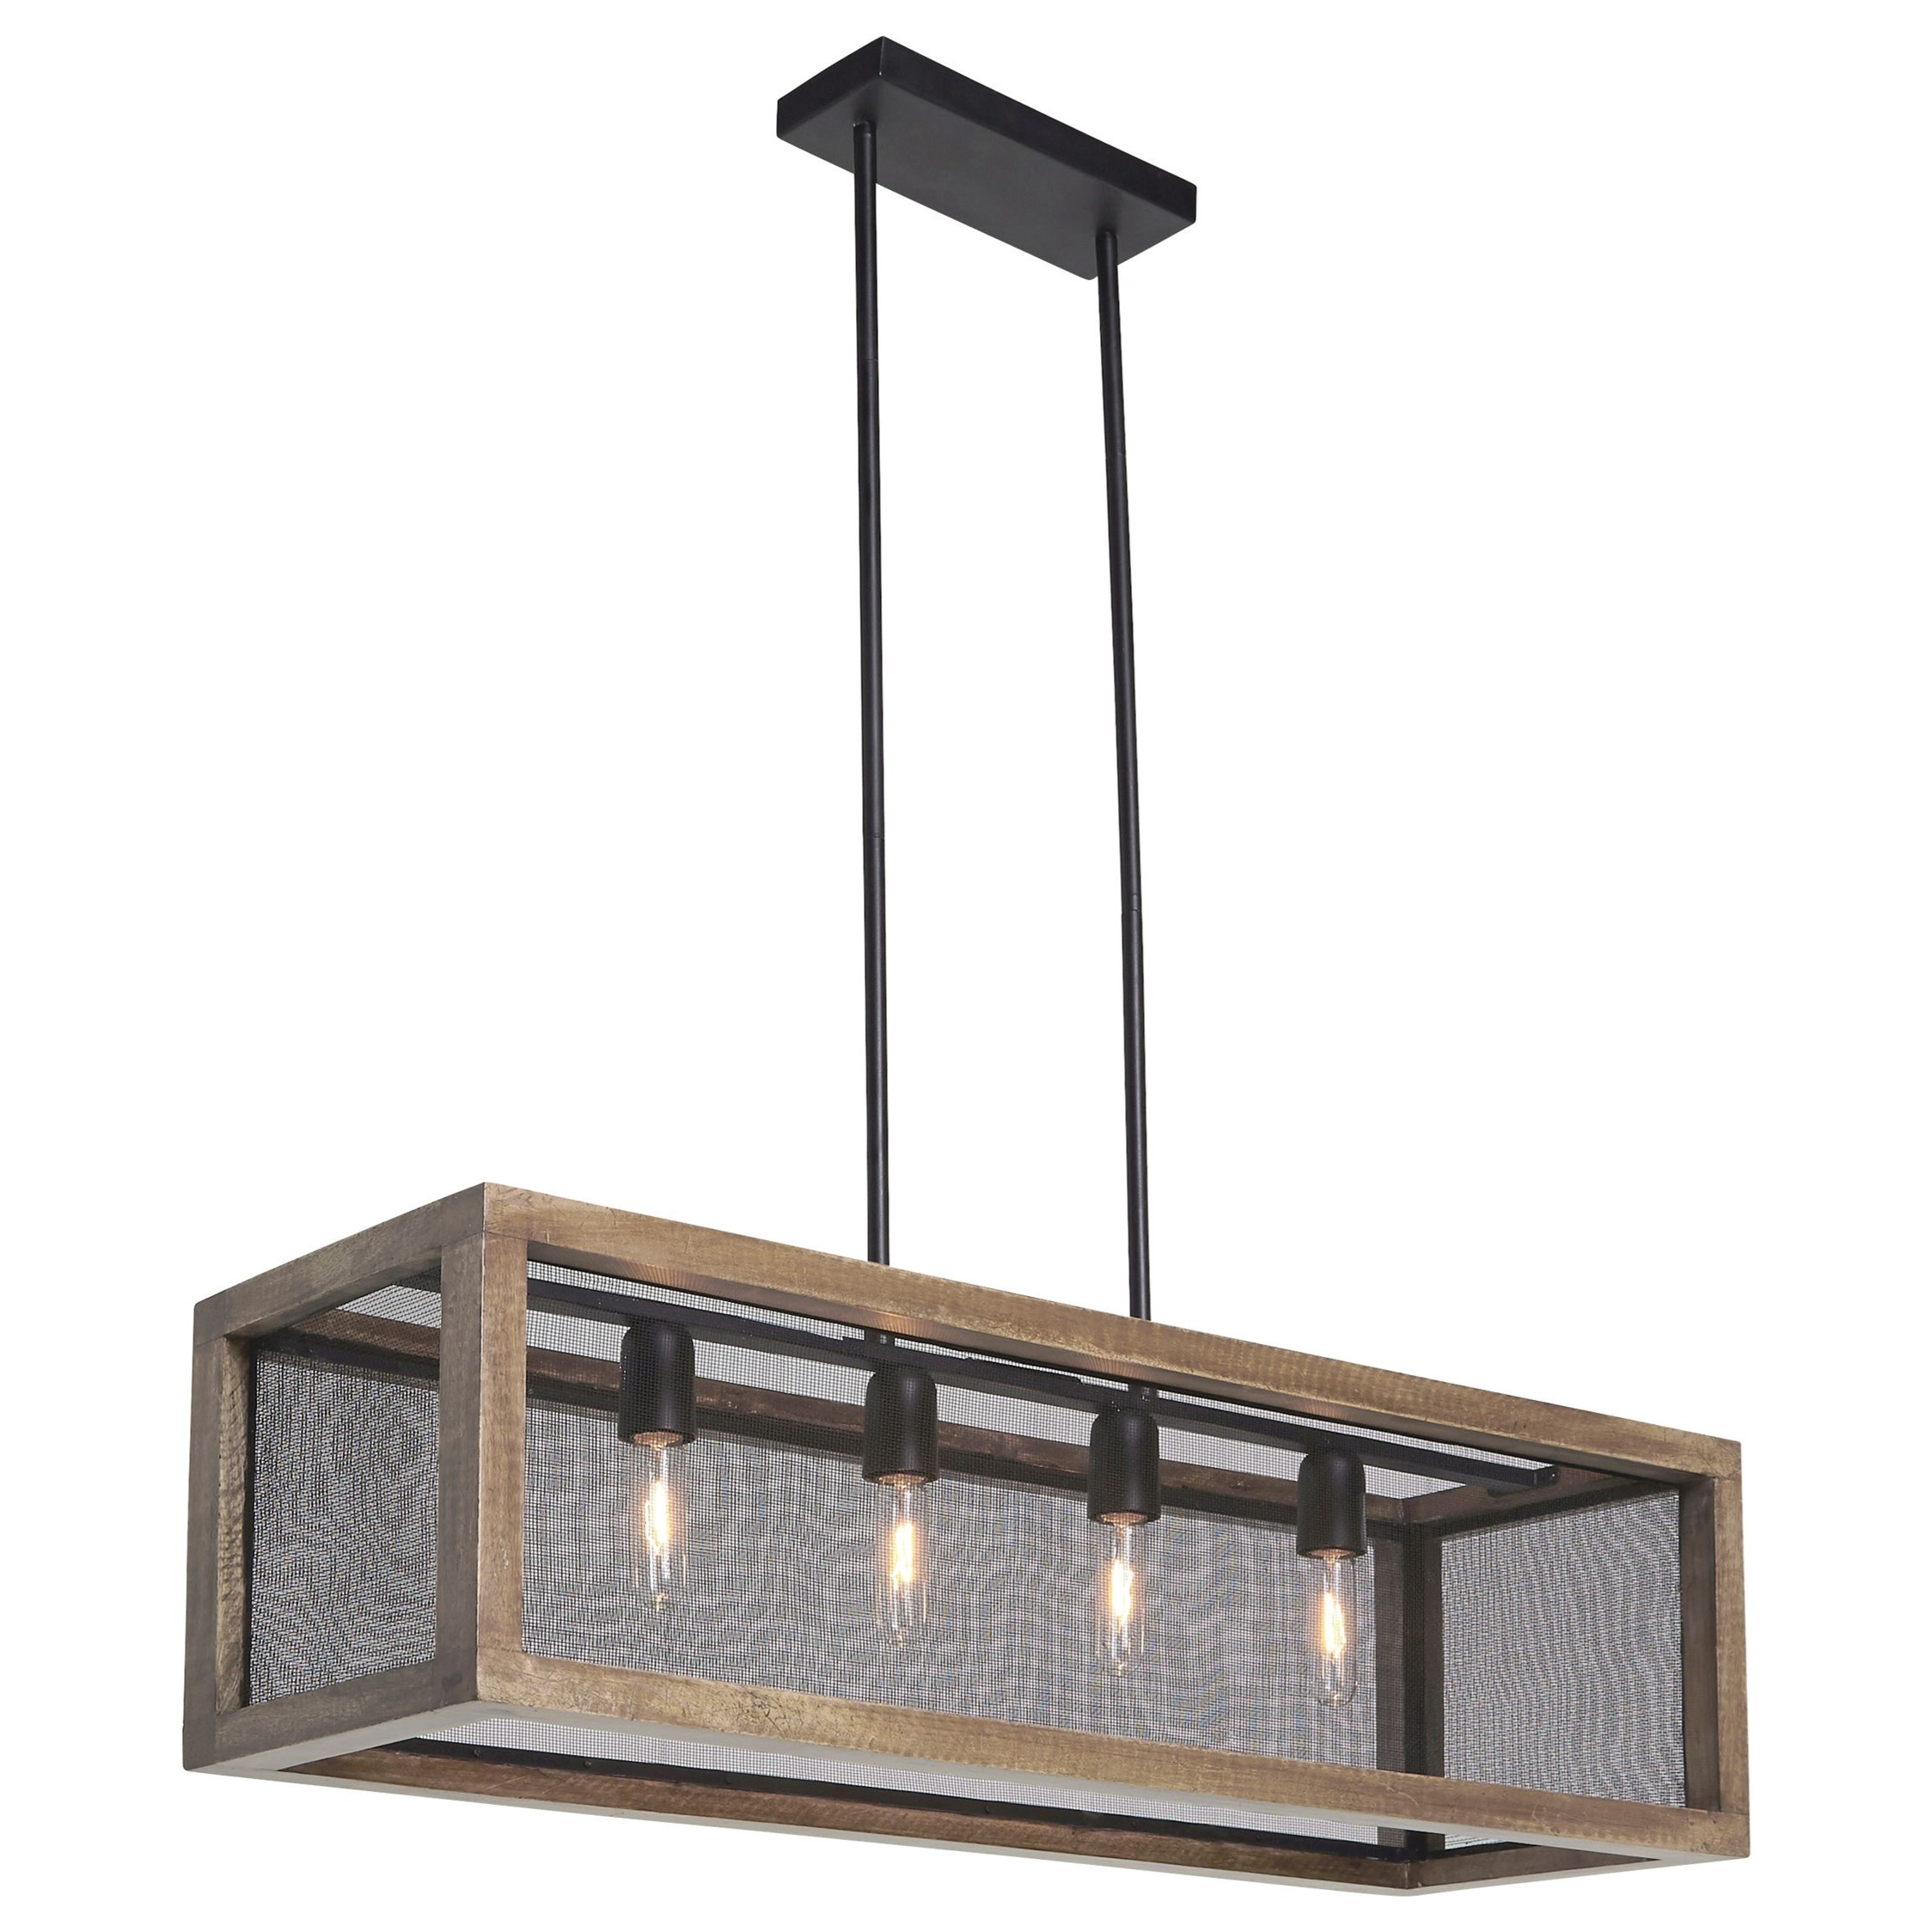 Pendant Lighting Pendant Lights Jodene Brown Black Wood Pendant Light By Ashley Signature Design At Dunk Bright Furniture